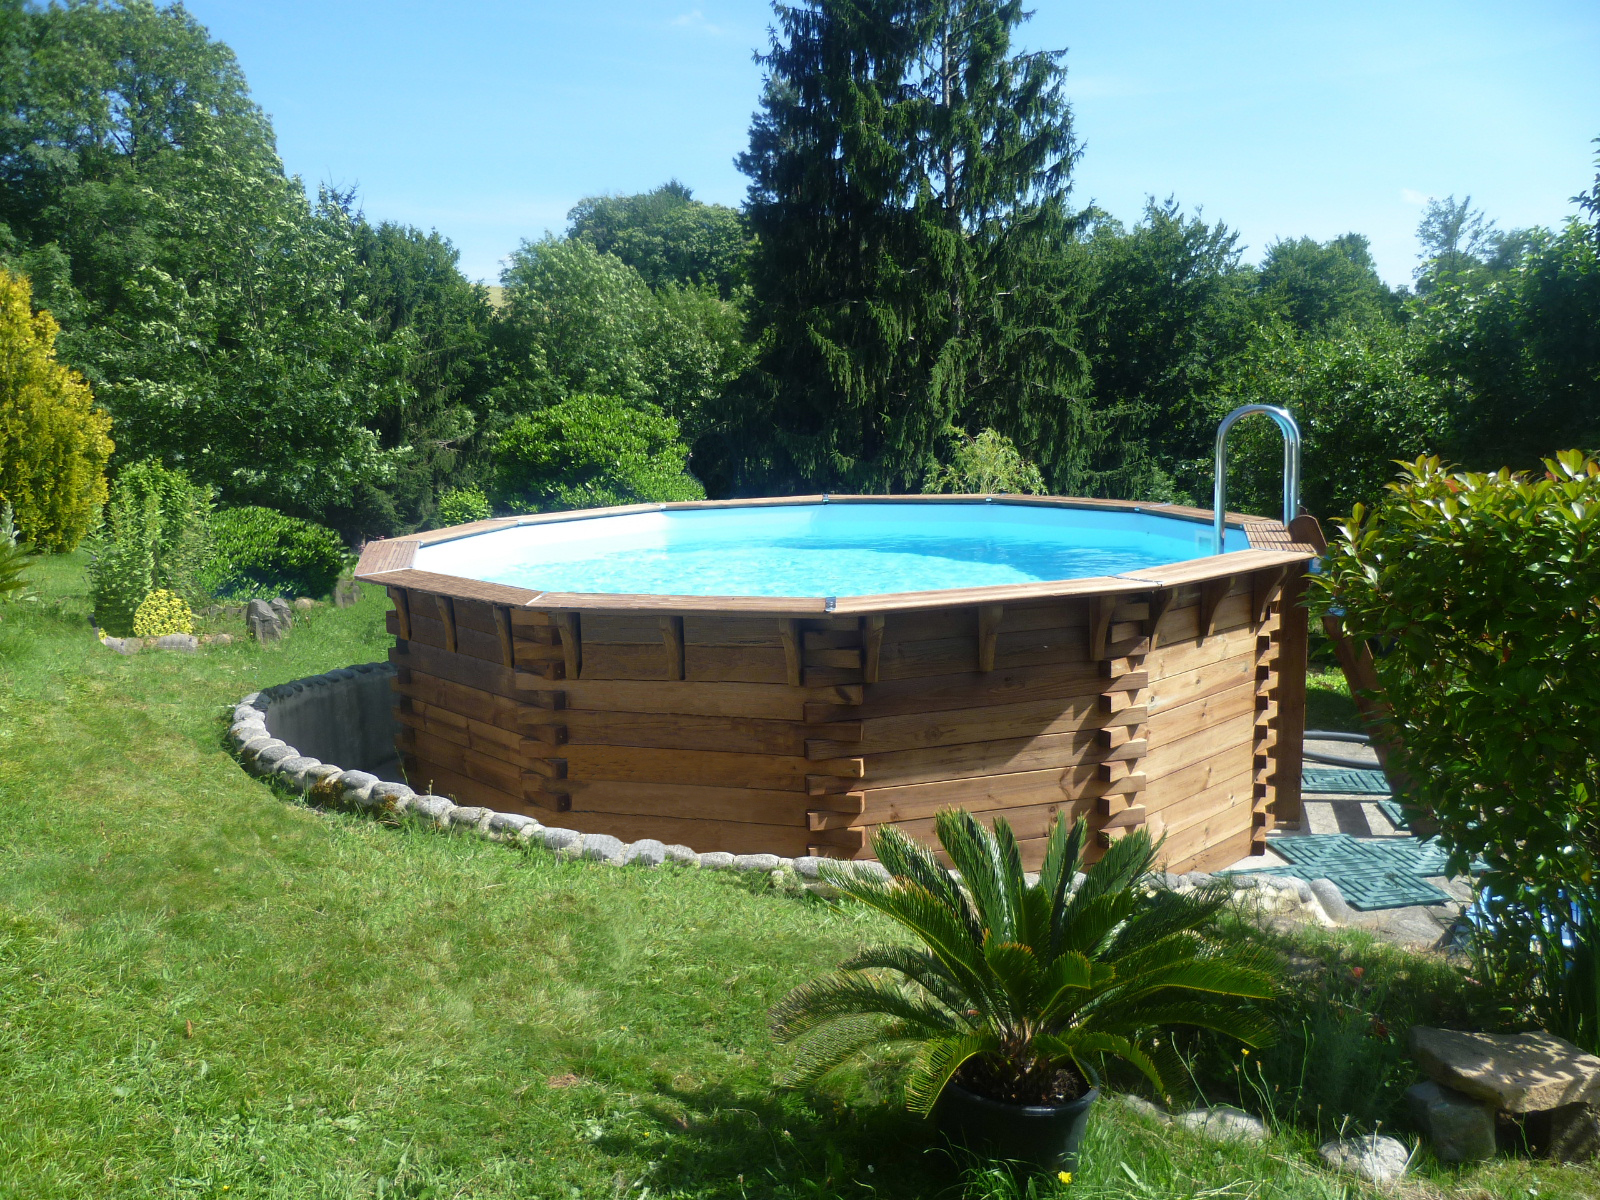 Am nagement ext rieur bois i piveteaubois for Amenagement autour piscine bois